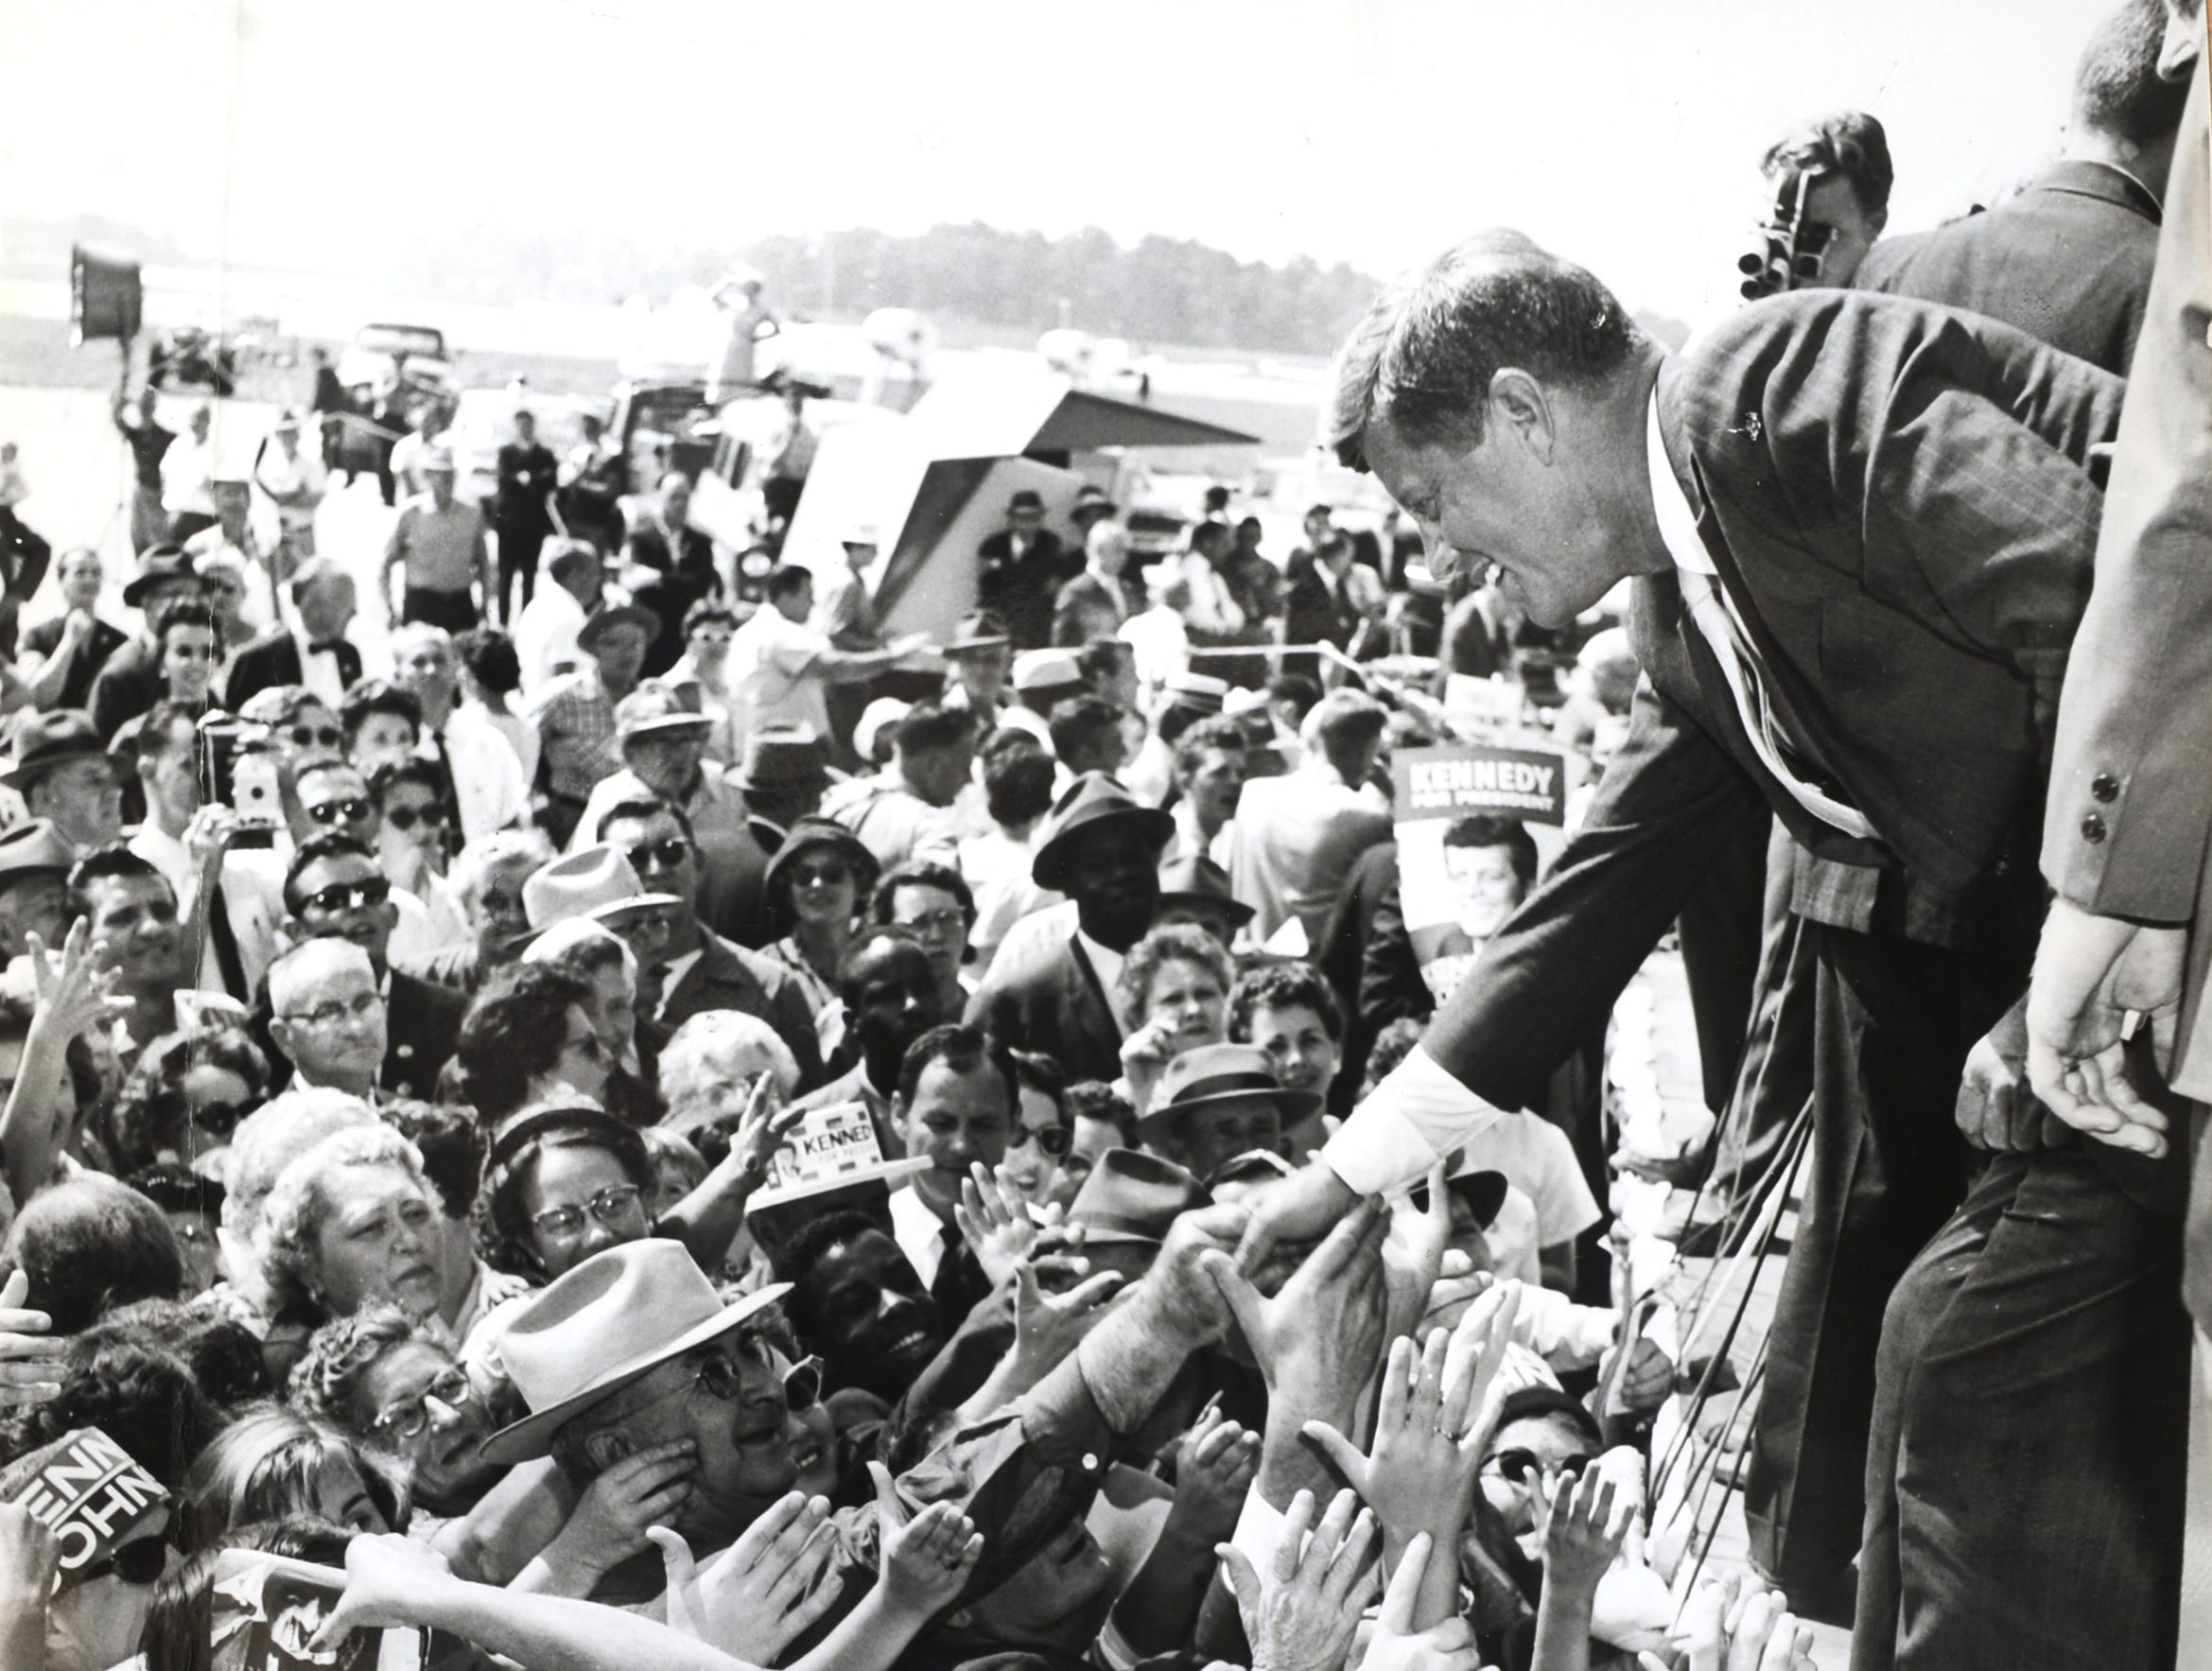 President John F. Kennedy campaigns at McGhee Tyson Airport, Sept. 21, 1960. (KNS Archive)